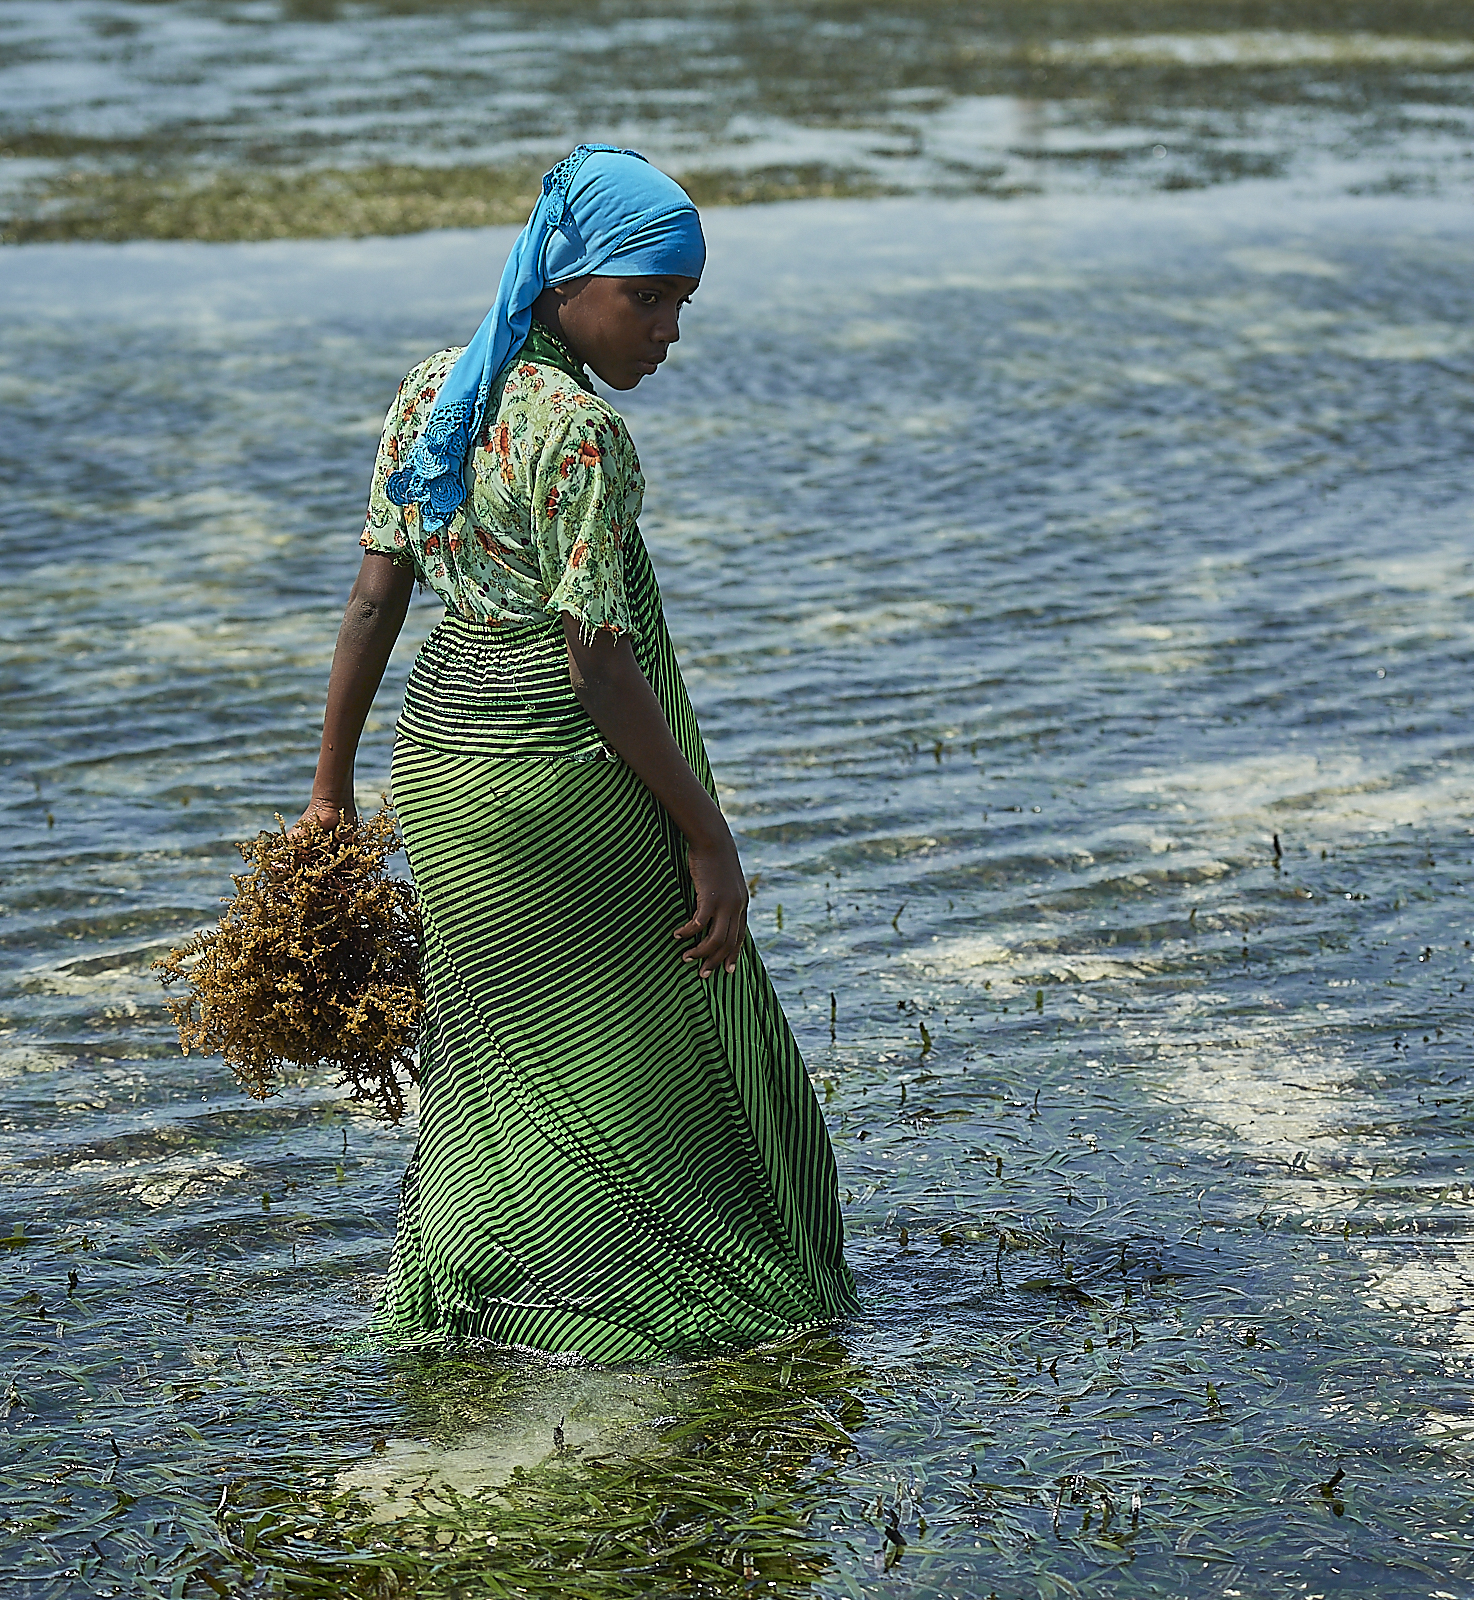 following a storm, seaweed gets ripped from the farms and carried along the water.  the first task of each day is to walk around and collect separated seaweed to return to the farm